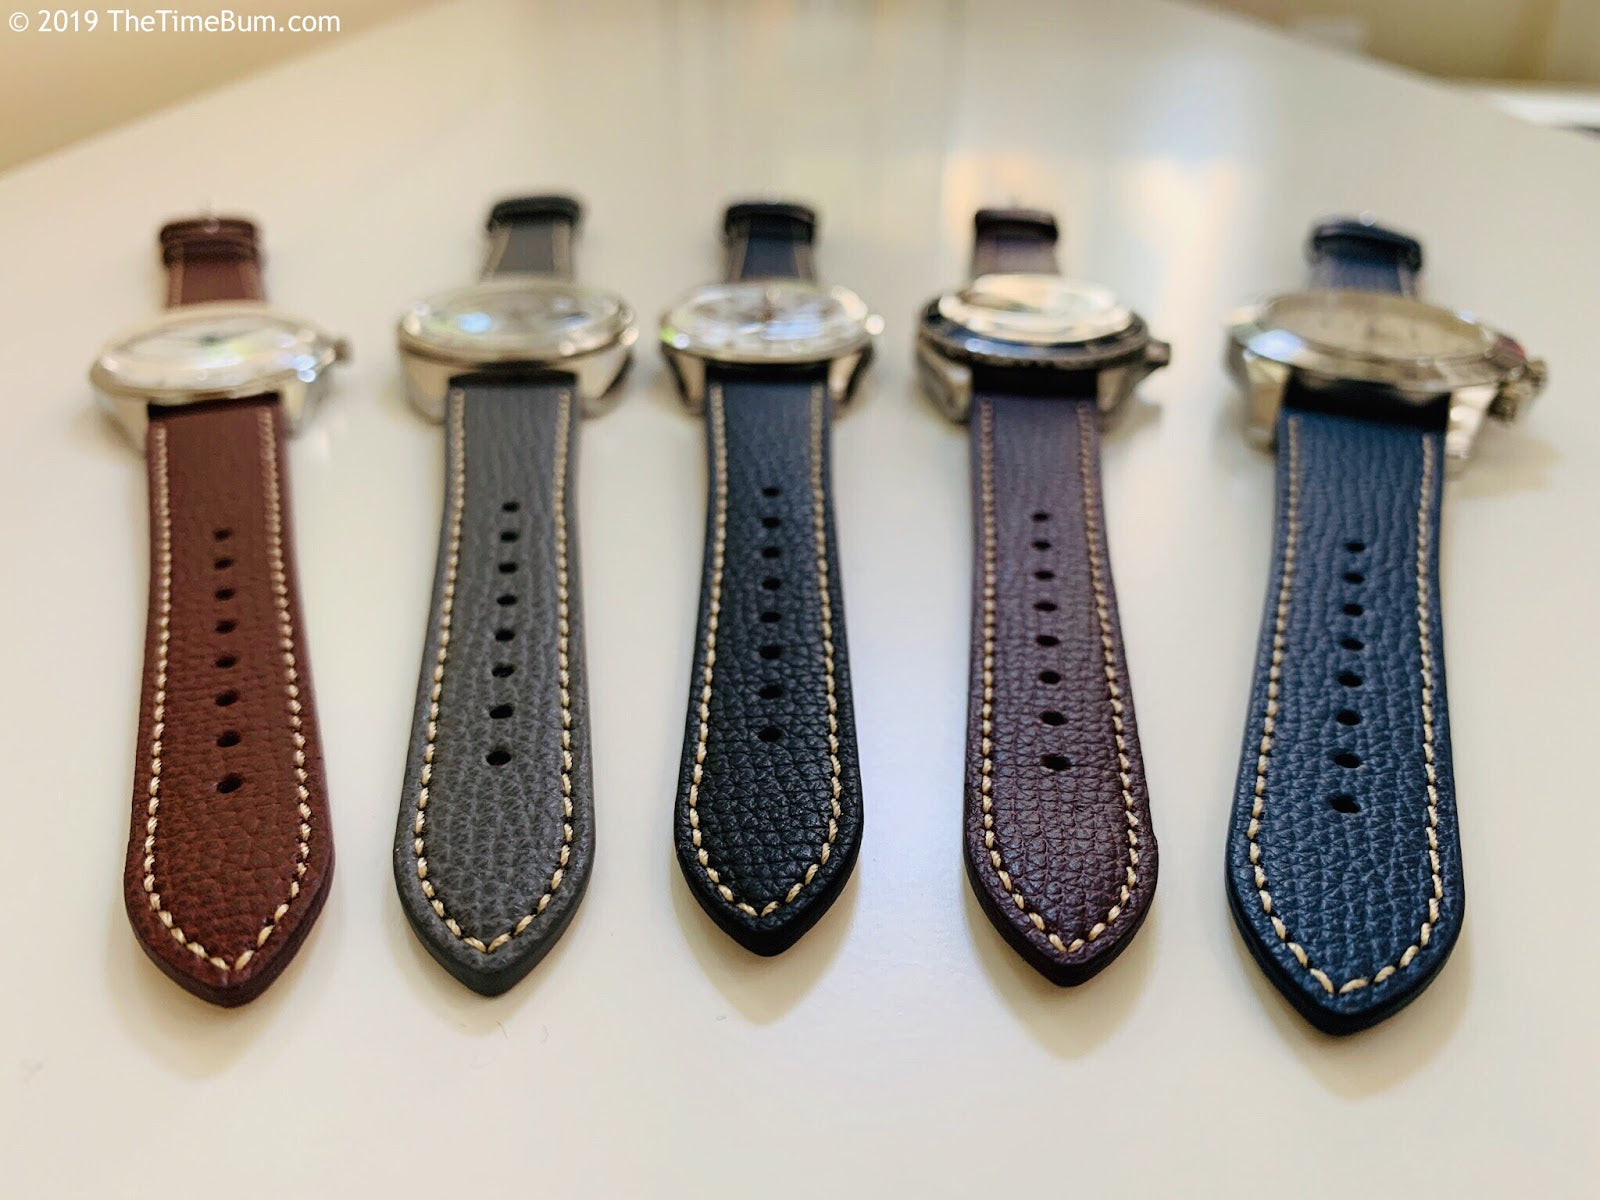 vario italian leather watch straps